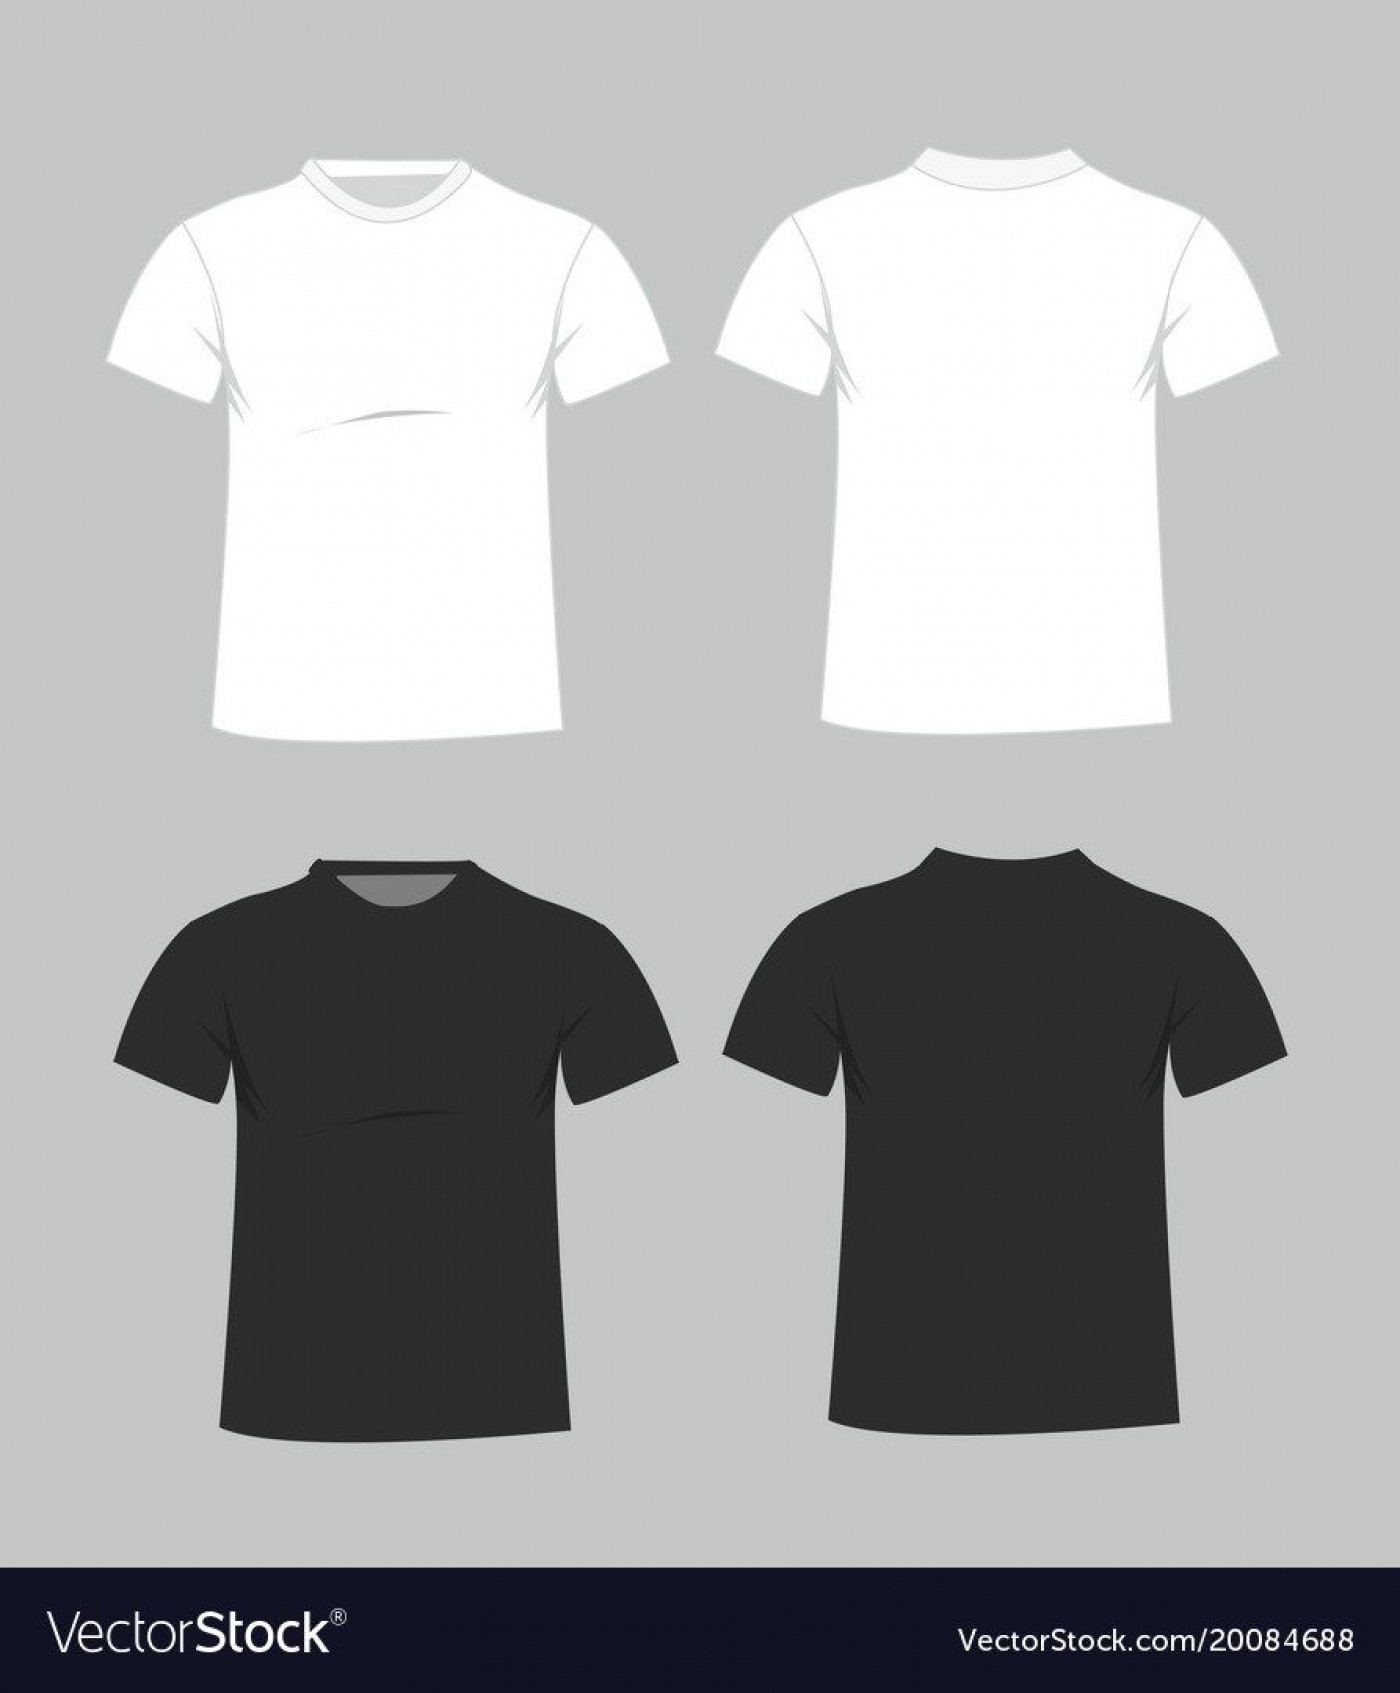 006 Magnificent Plain T Shirt Template Example  Blank Front And Back1400